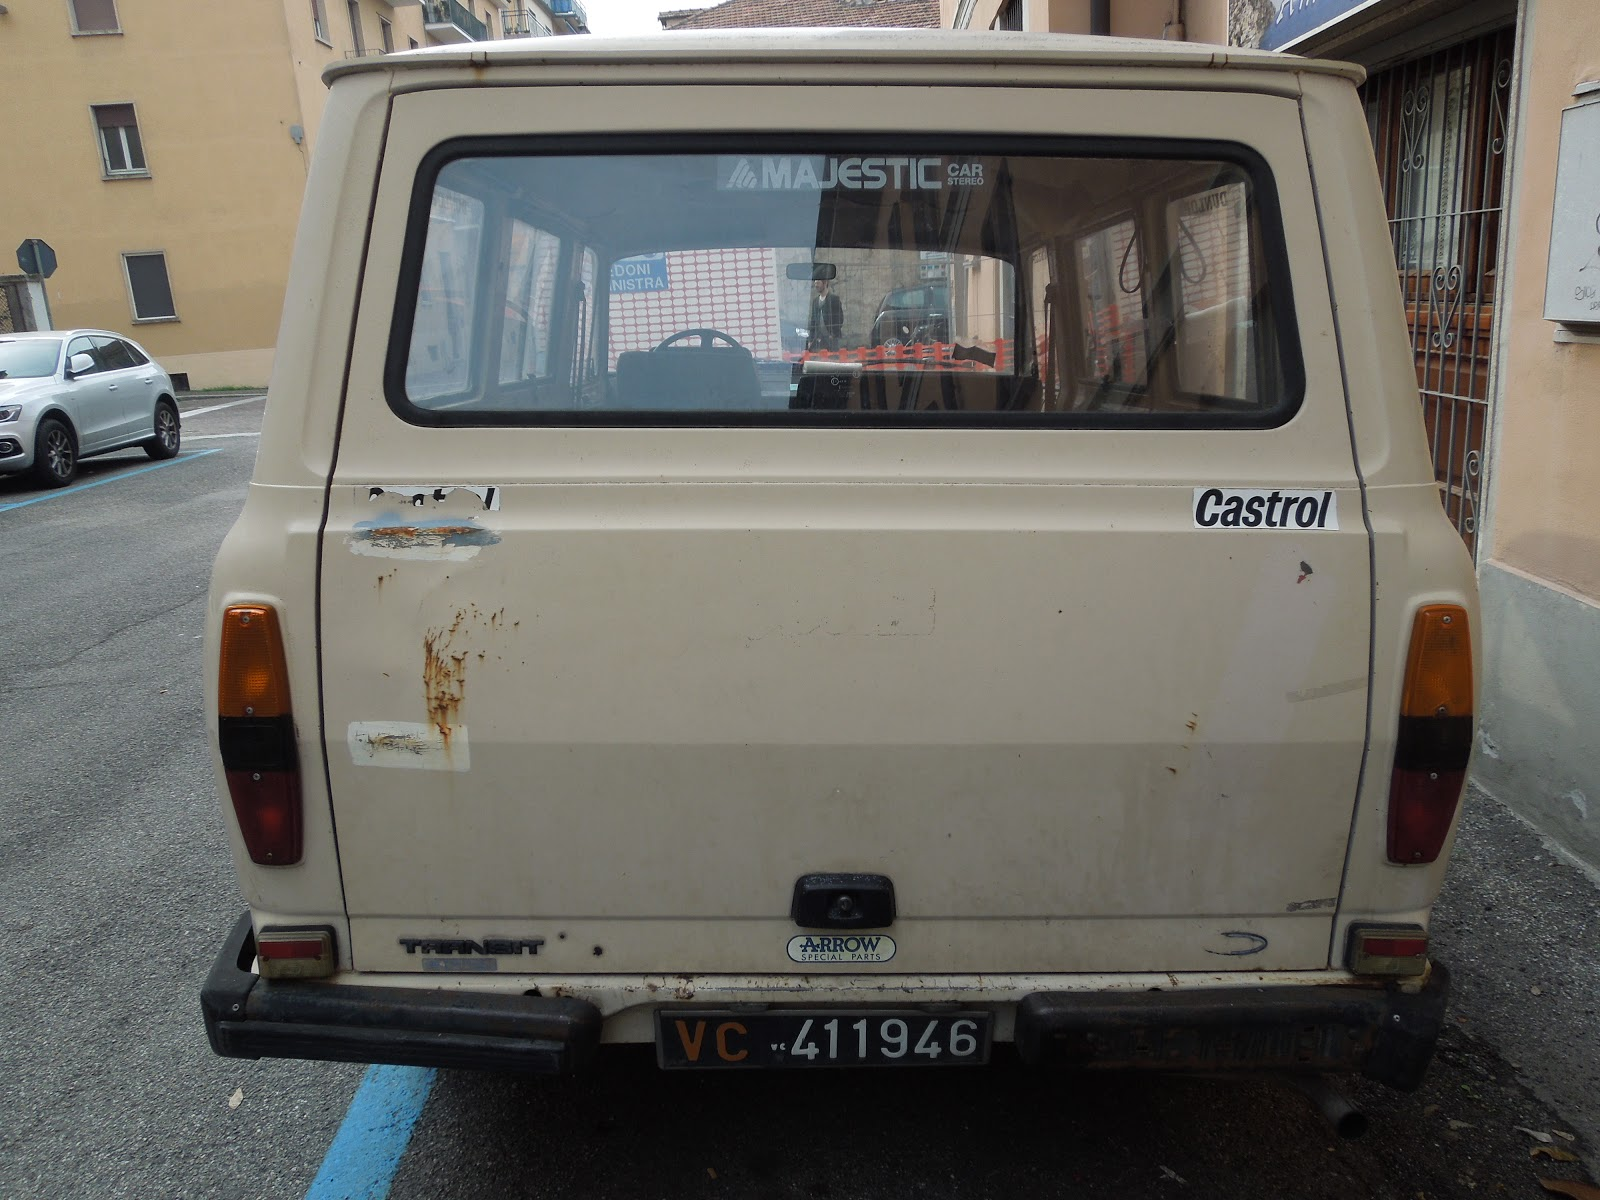 Submission 1978 ford transit pavia italy mk2 transit wiki photo claire dilworth